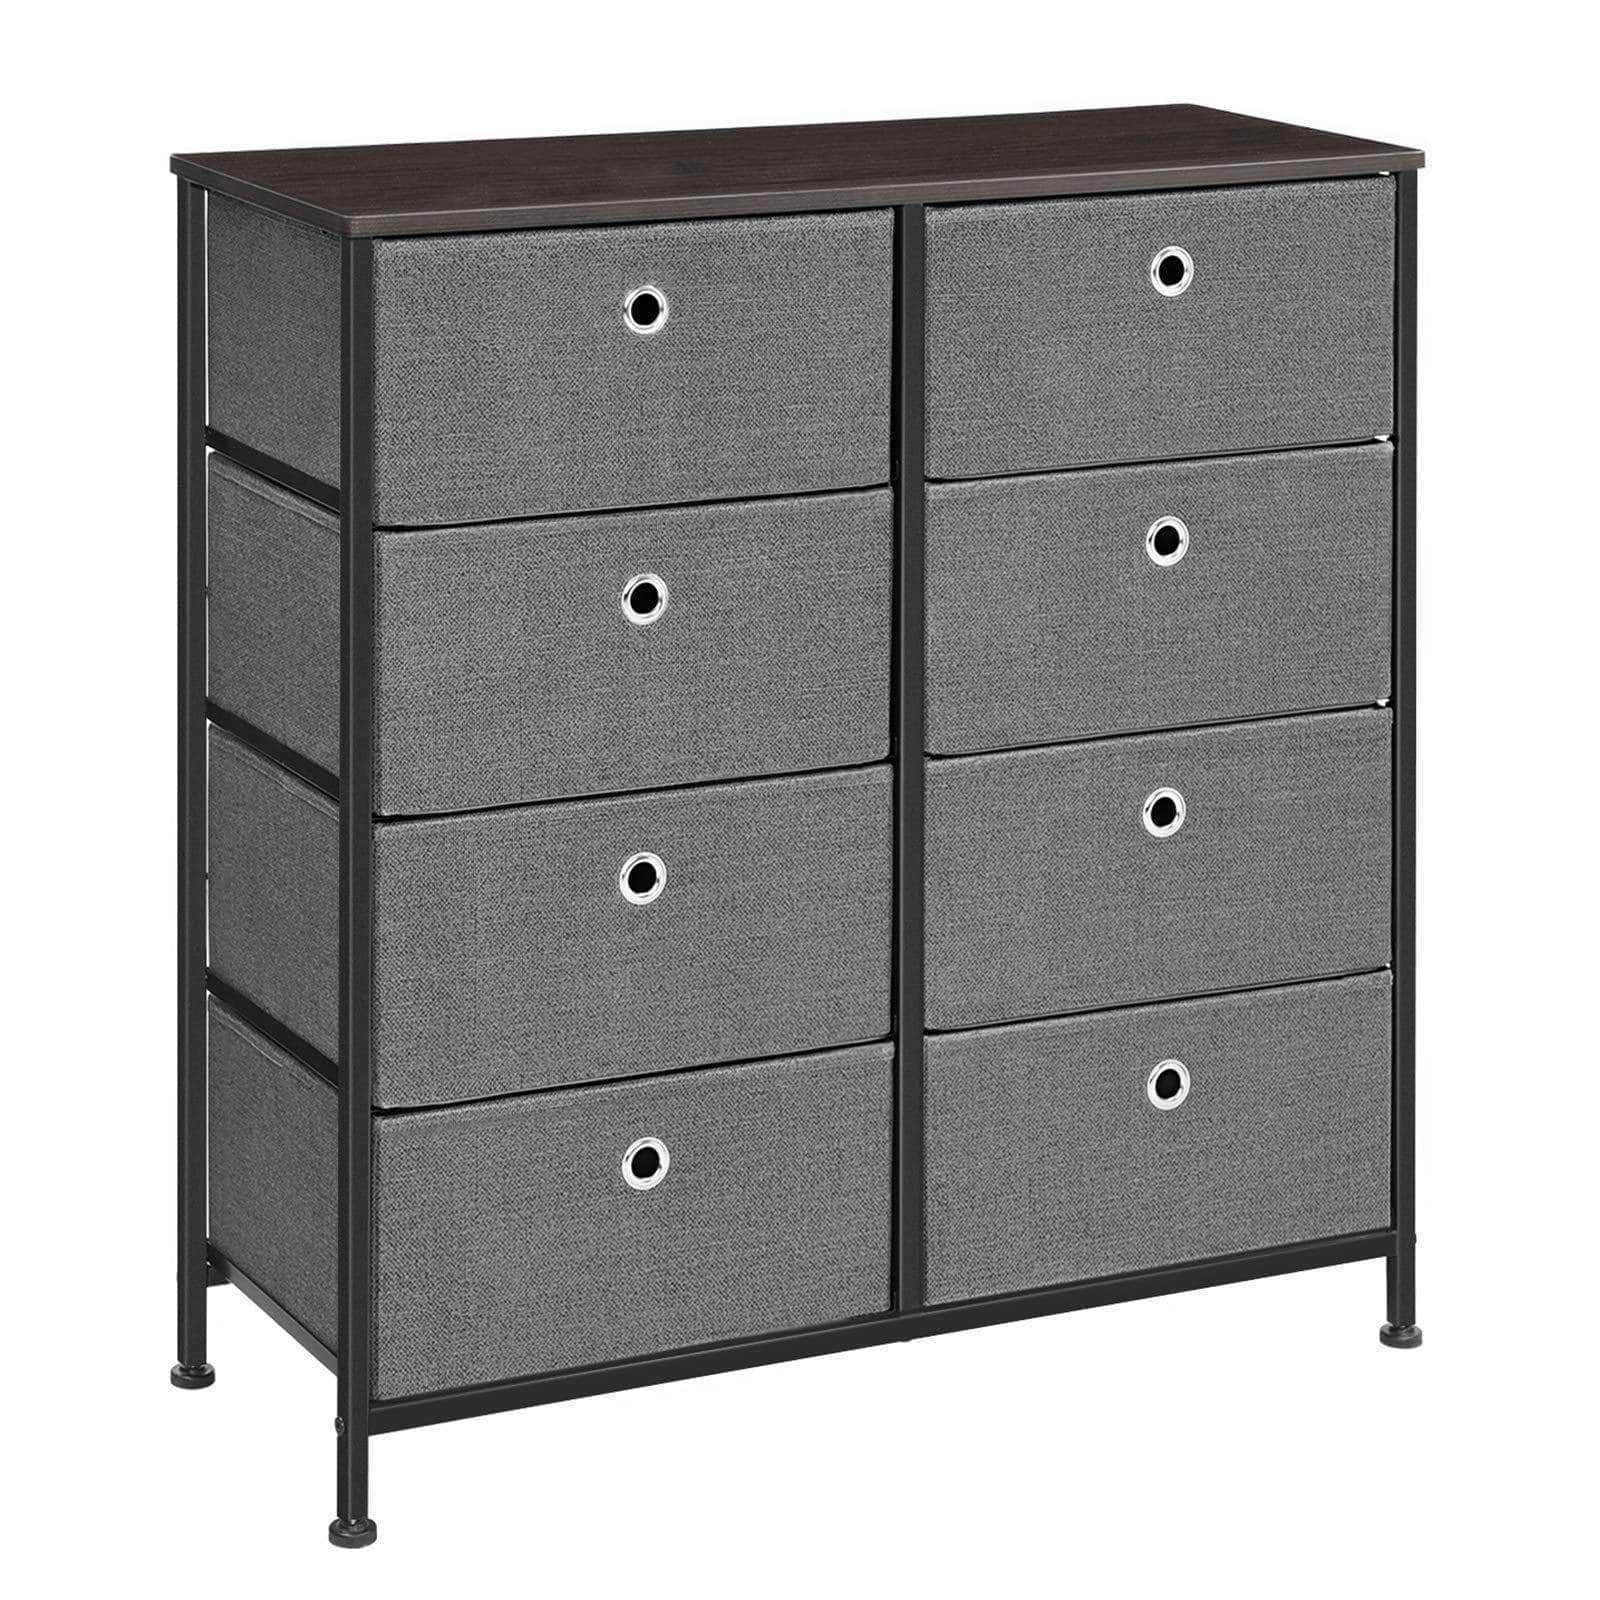 On amazon songmics 4 tier wide drawer dresser storage unit with 8 easy pull fabric drawers and metal frame wooden tabletop for closets nursery dorm room hallway 31 5 x 11 8 x 32 1 inches gray ults24g